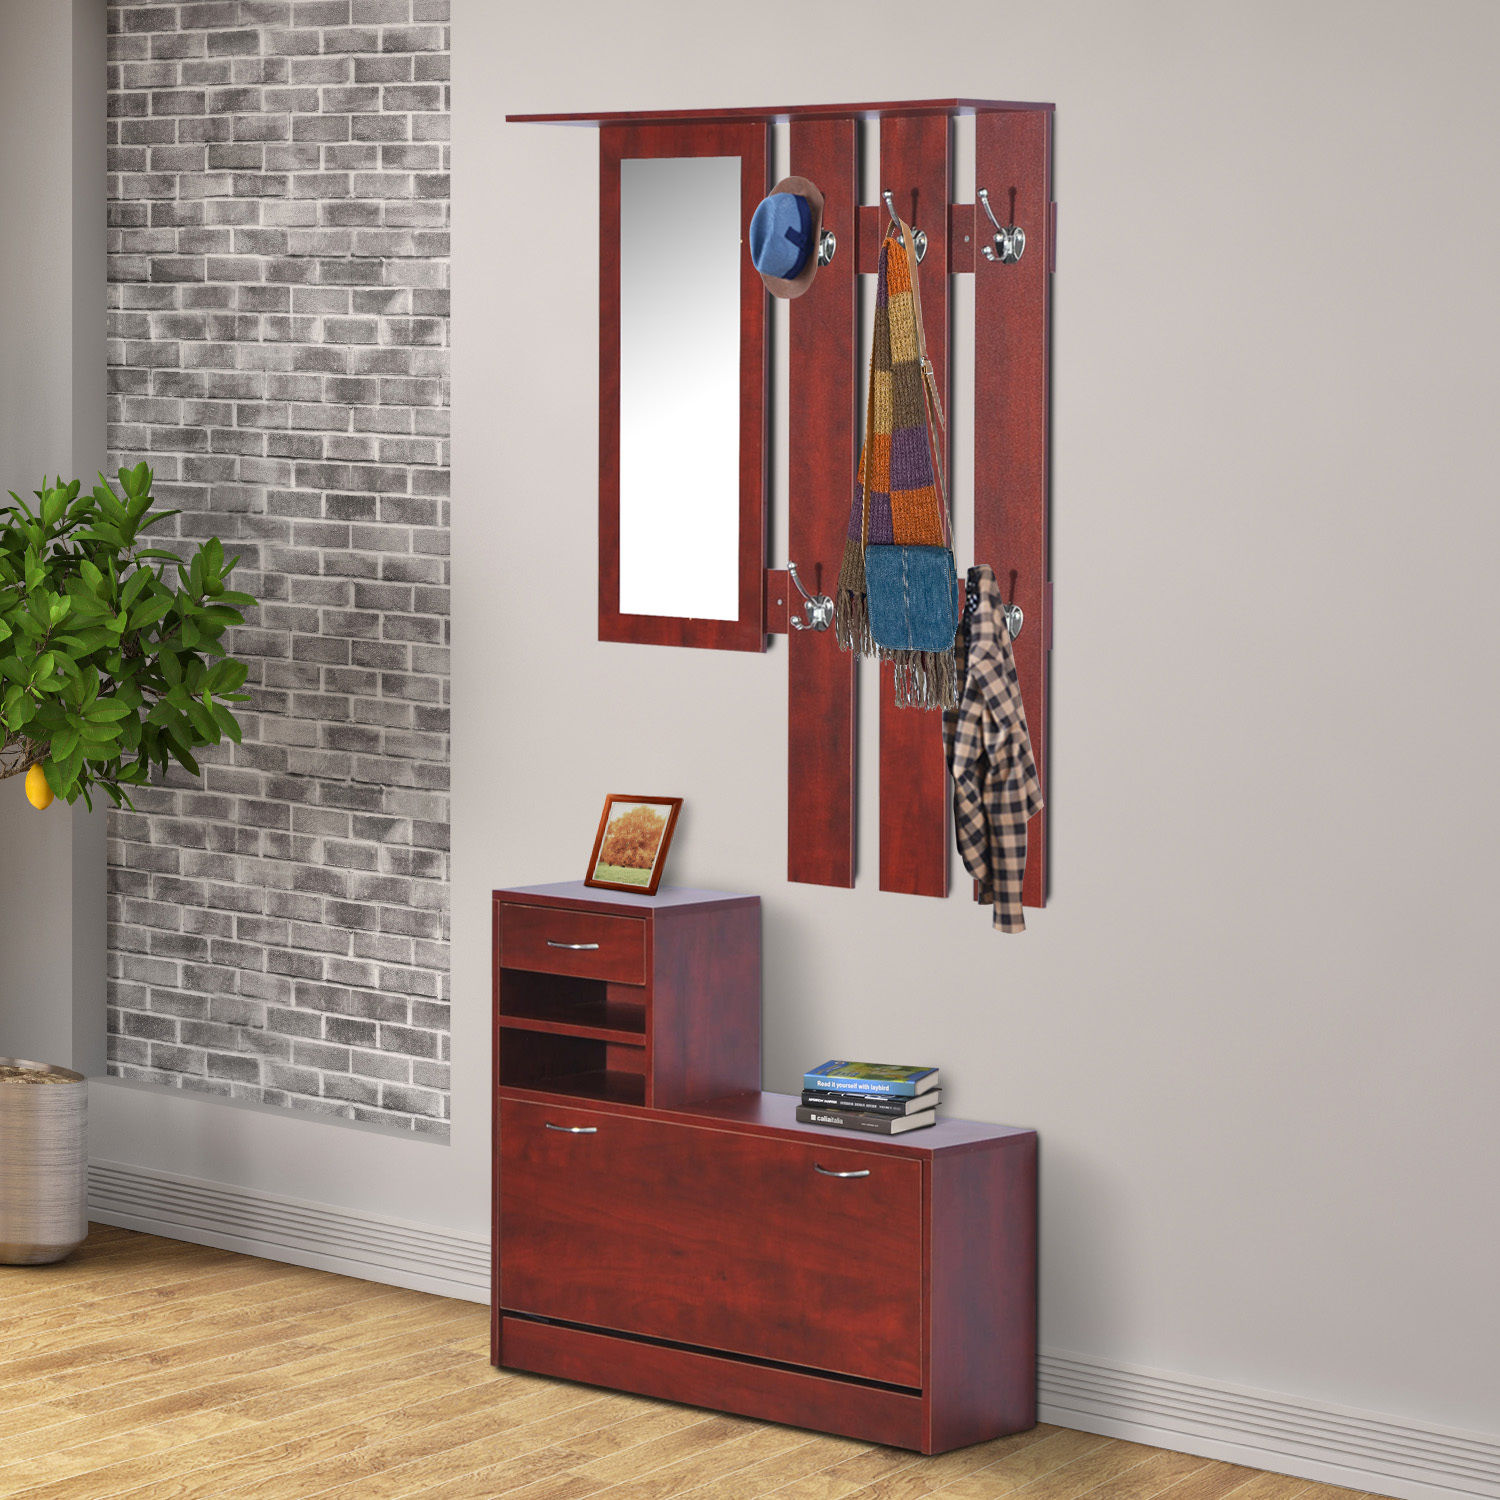 Foyer Coat Storage : Pc entryway hall coat rack shoe storage bench organizer